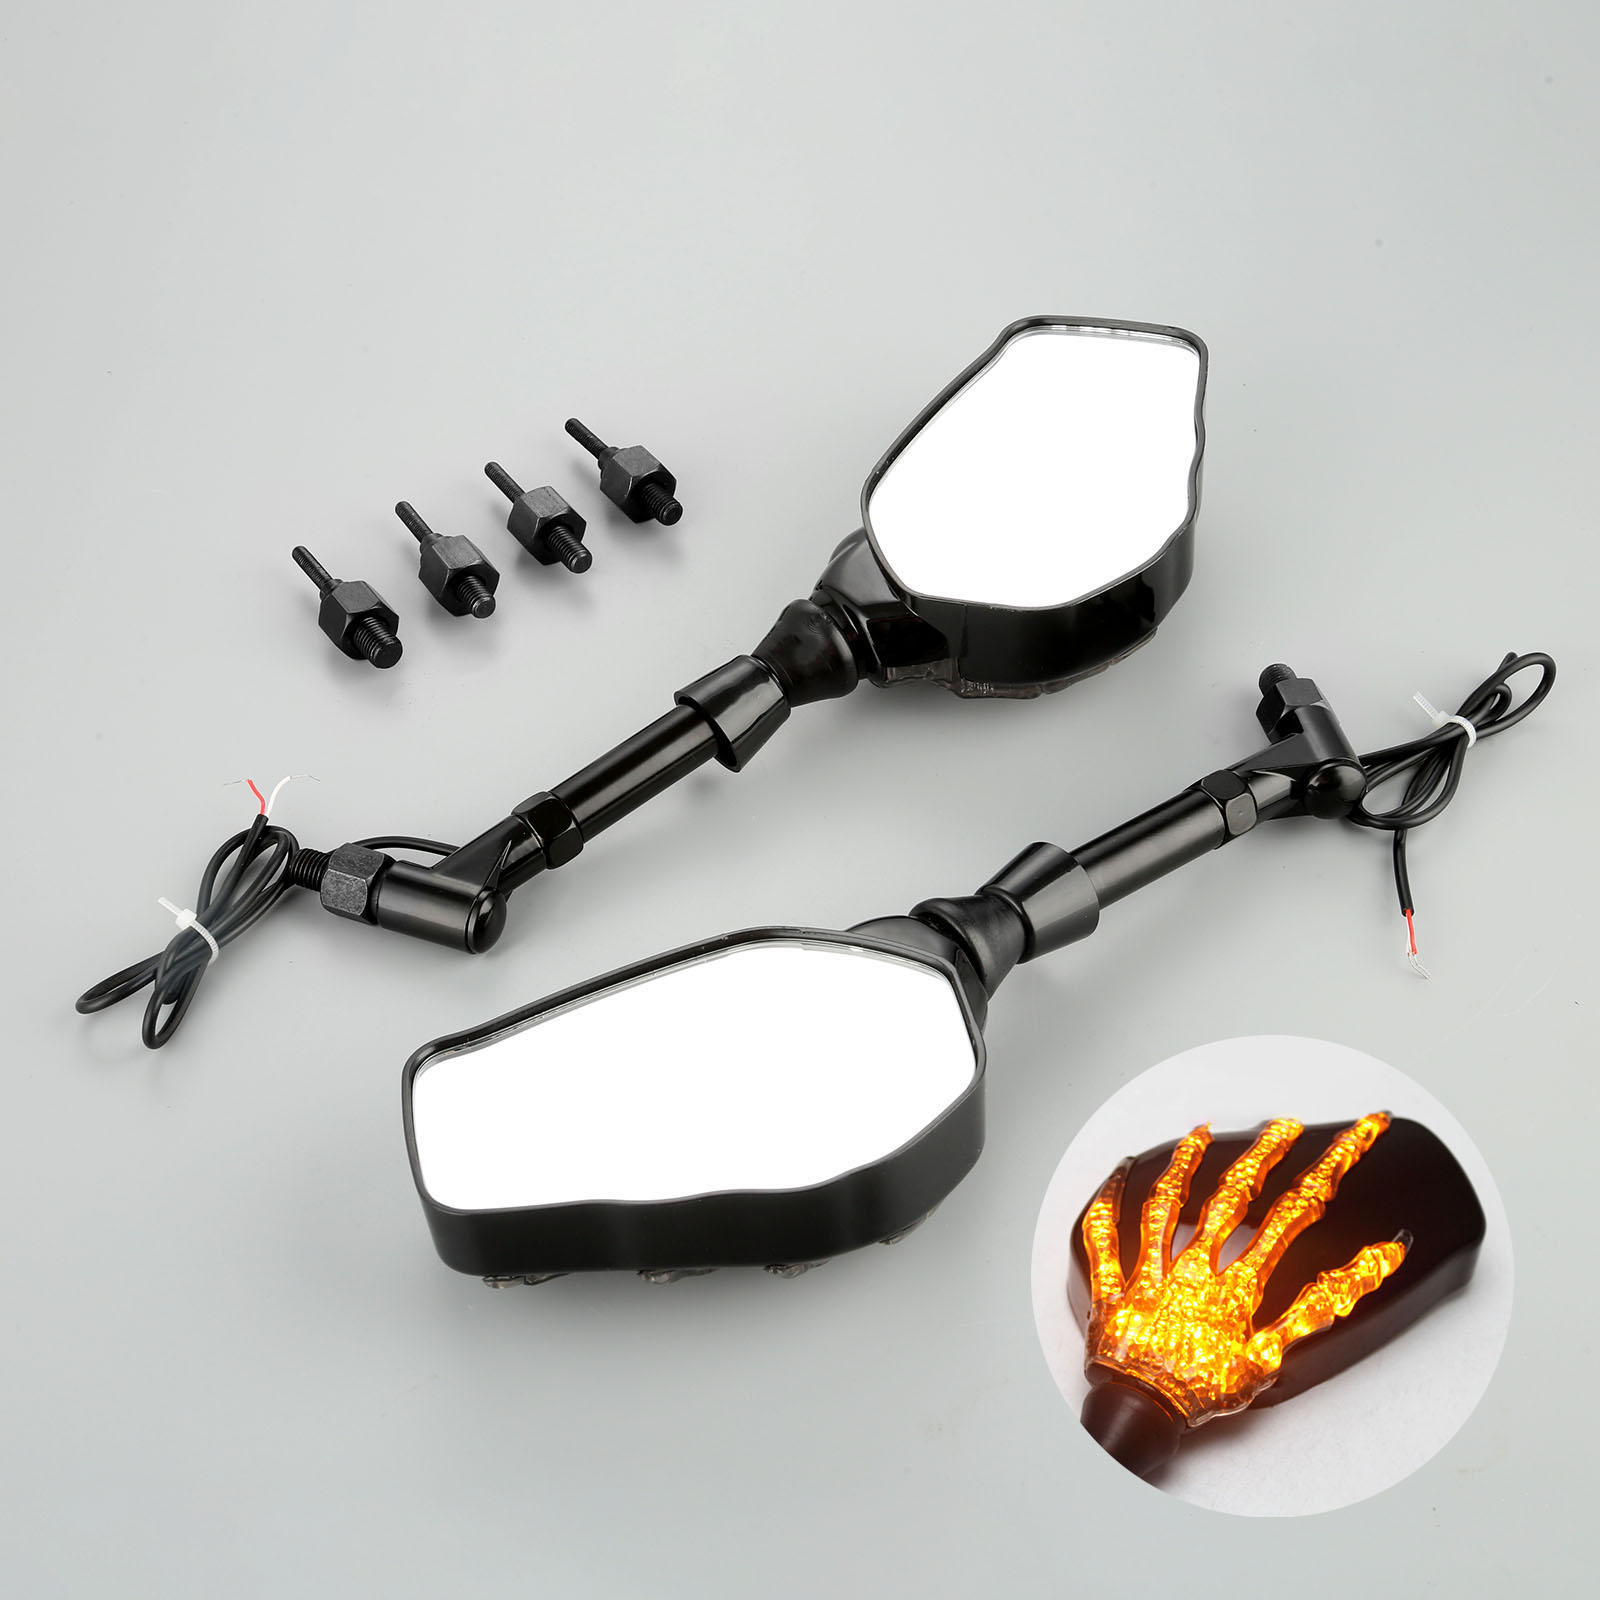 Image 2 - 1Pair Motorcycle Handlebar Rearview Mirror LED Light With Skull Hand Pattern Ghost Claw 8mm 10mm Screws 10W 12V Light-in Side Mirrors & Accessories from Automobiles & Motorcycles